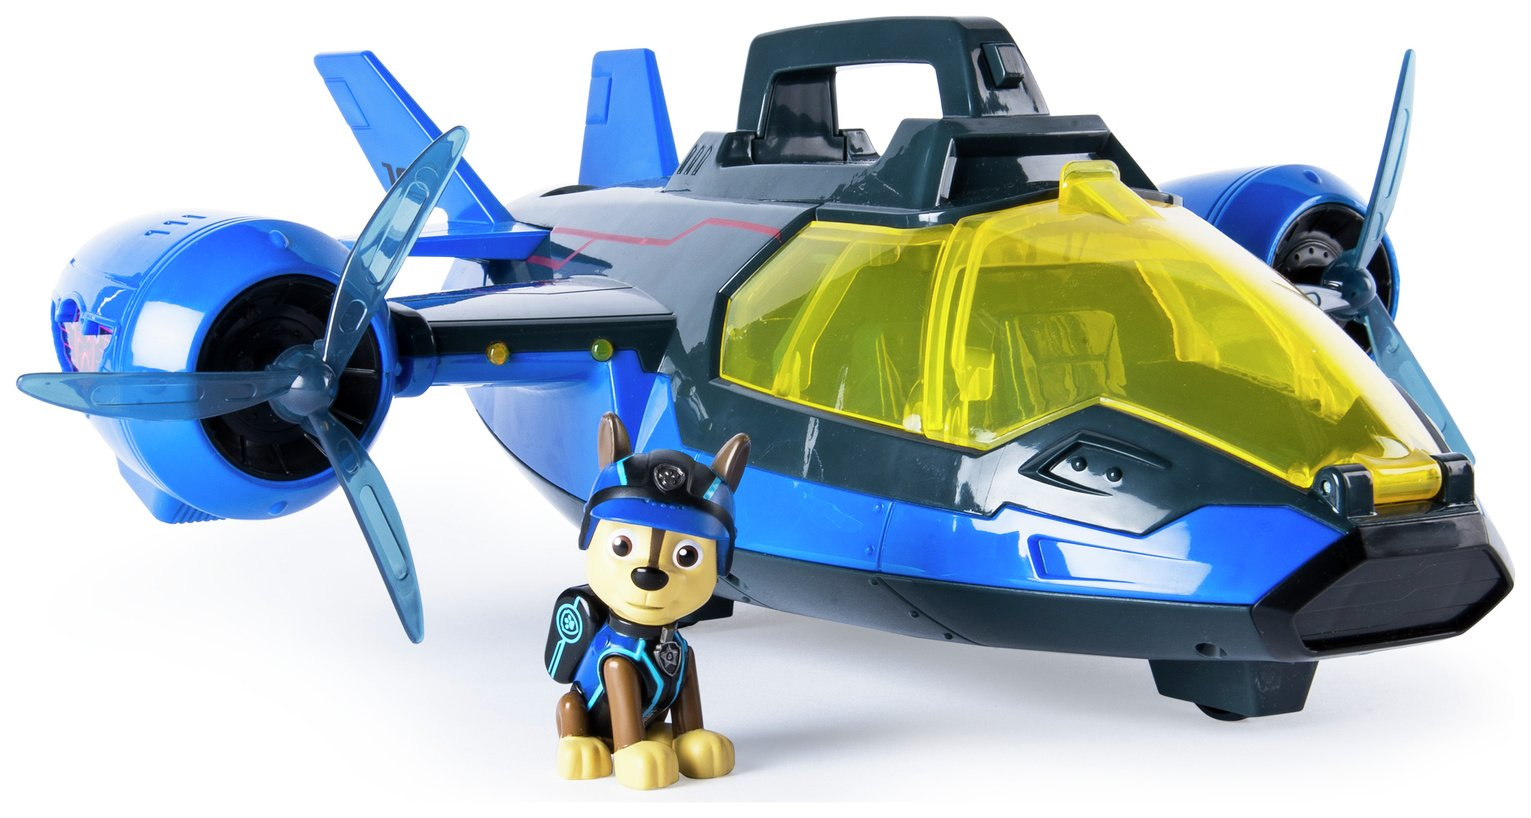 PAW Patrol Mission Air Patroller